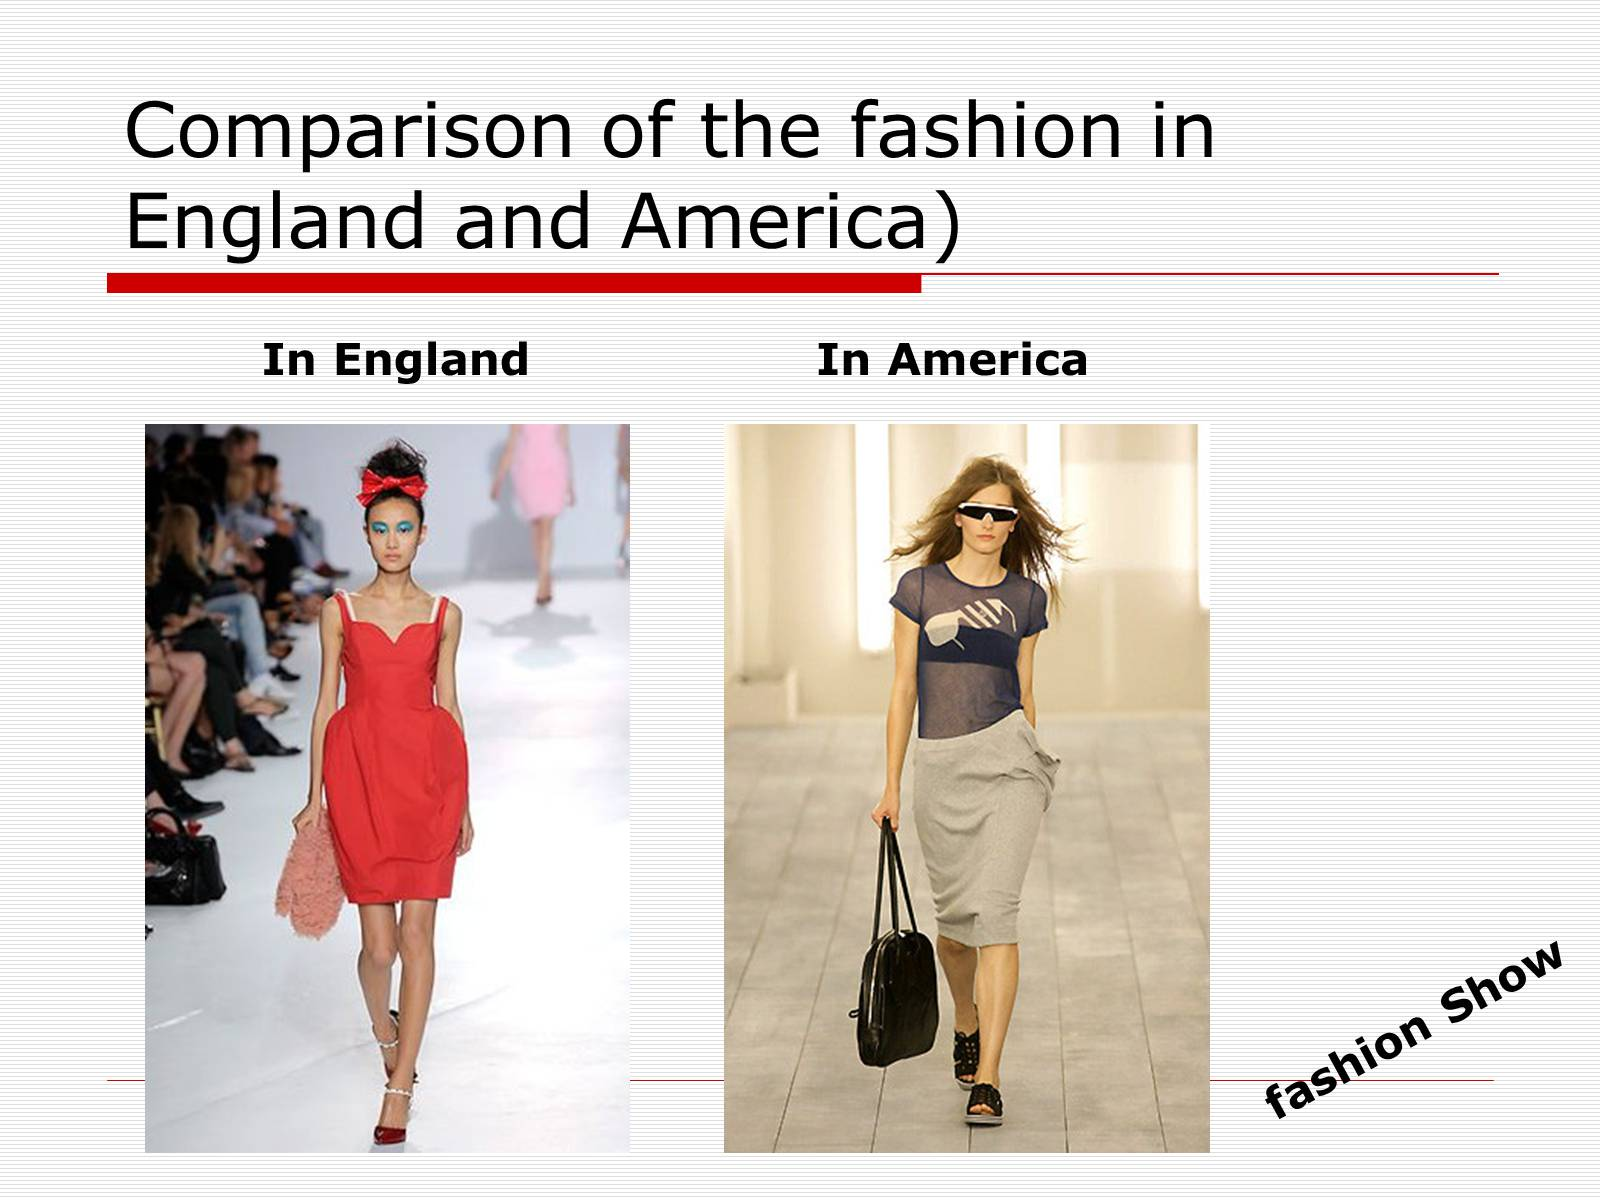 Презентація на тему «Comparison of the fashion in England and America» - Слайд #49